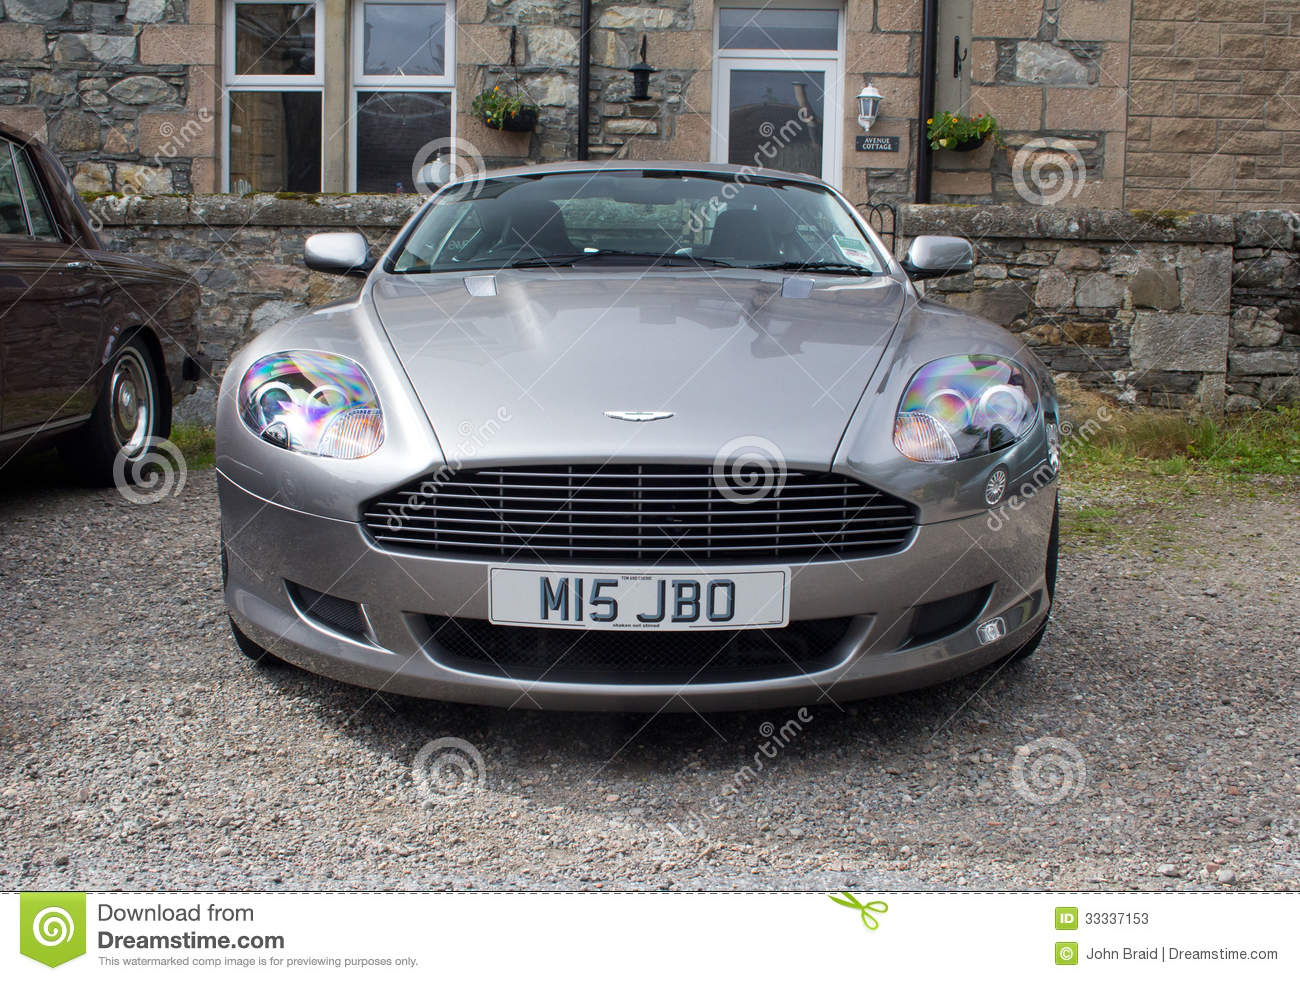 aston martin db9 front grille editorial stock photo - image of brand